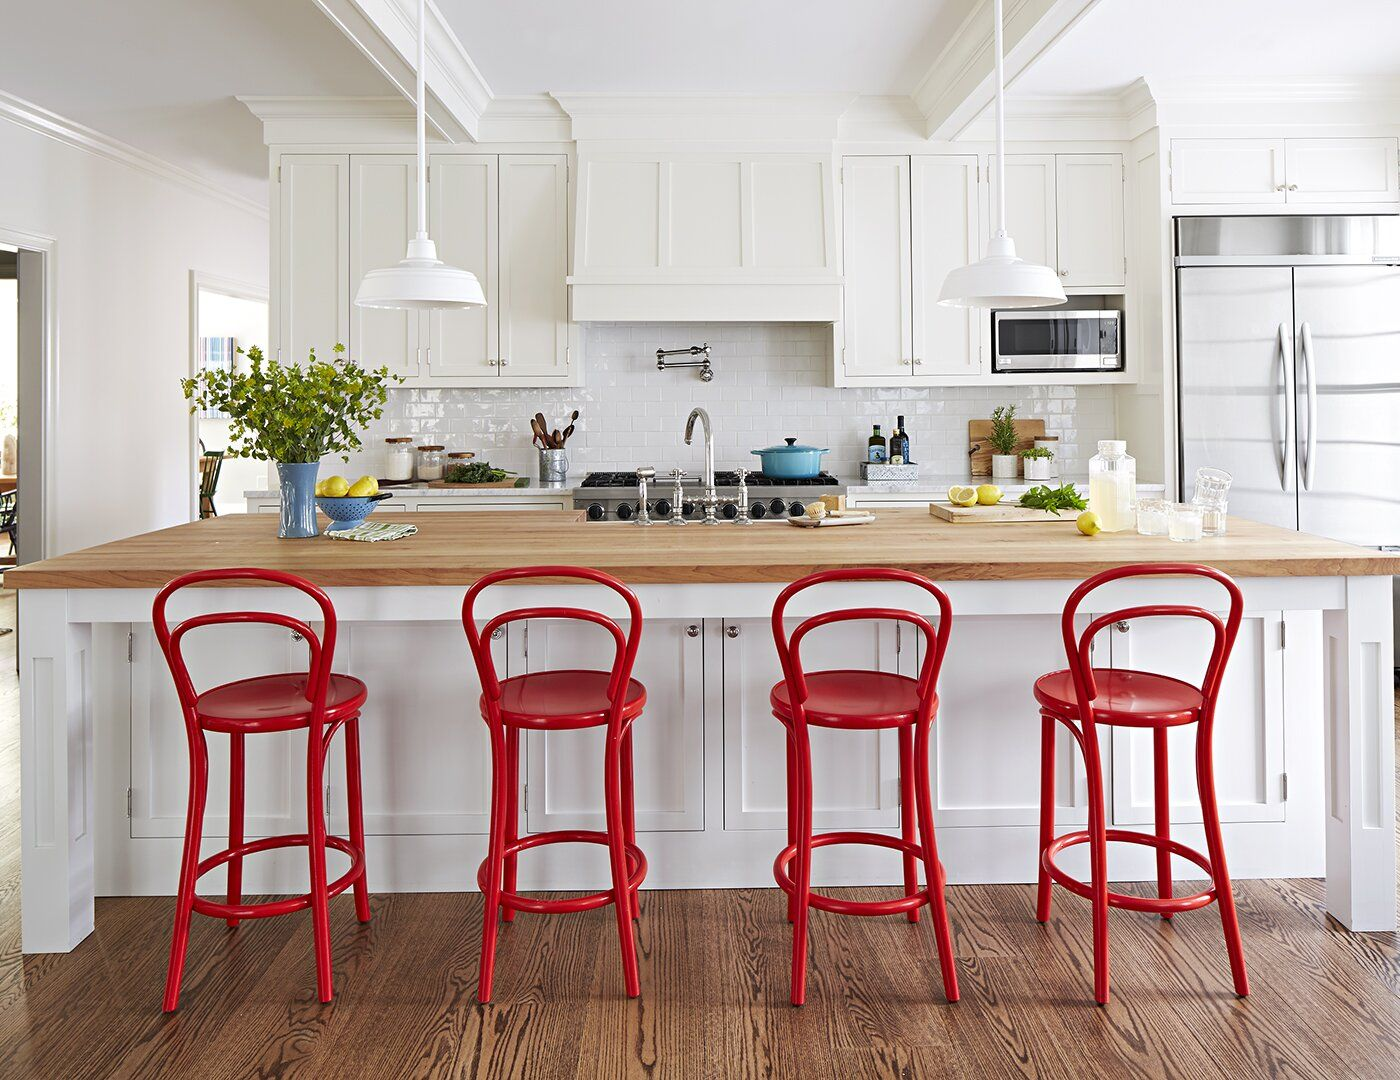 We Love This Home S Colorful Twist On Modern Farmhouse Style White Wood Kitchens Modern Farmhouse Style Large Kitchen Island Red kitchen island with stools